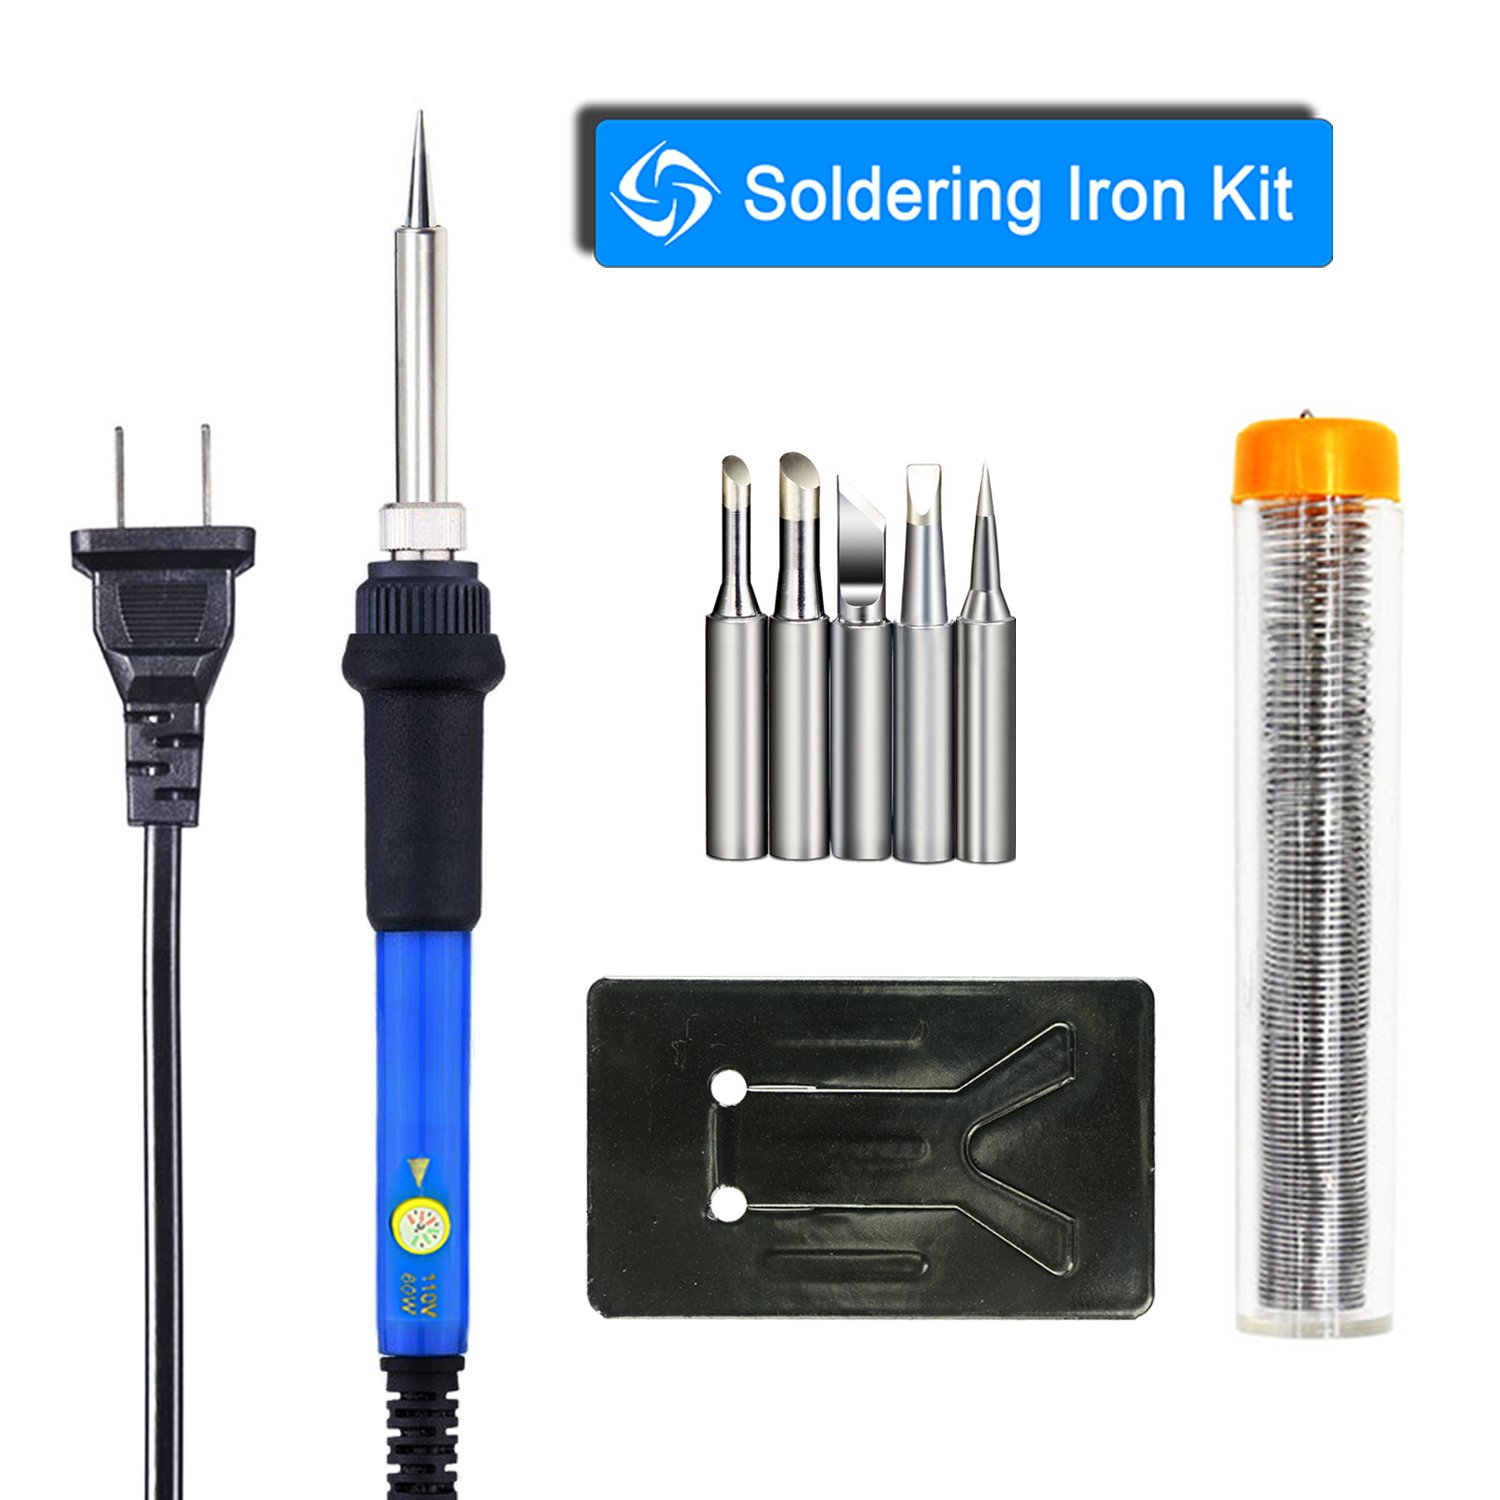 YOUSHARES® Adjustable Temperature Soldering Iron Kit 4 in 1- including 60W 110V Soldering Gun / Pen, Extra 5pcs Various Soldering Iron Tips, Additional Solder Wire tube and Y-type Soldering Iron Stand